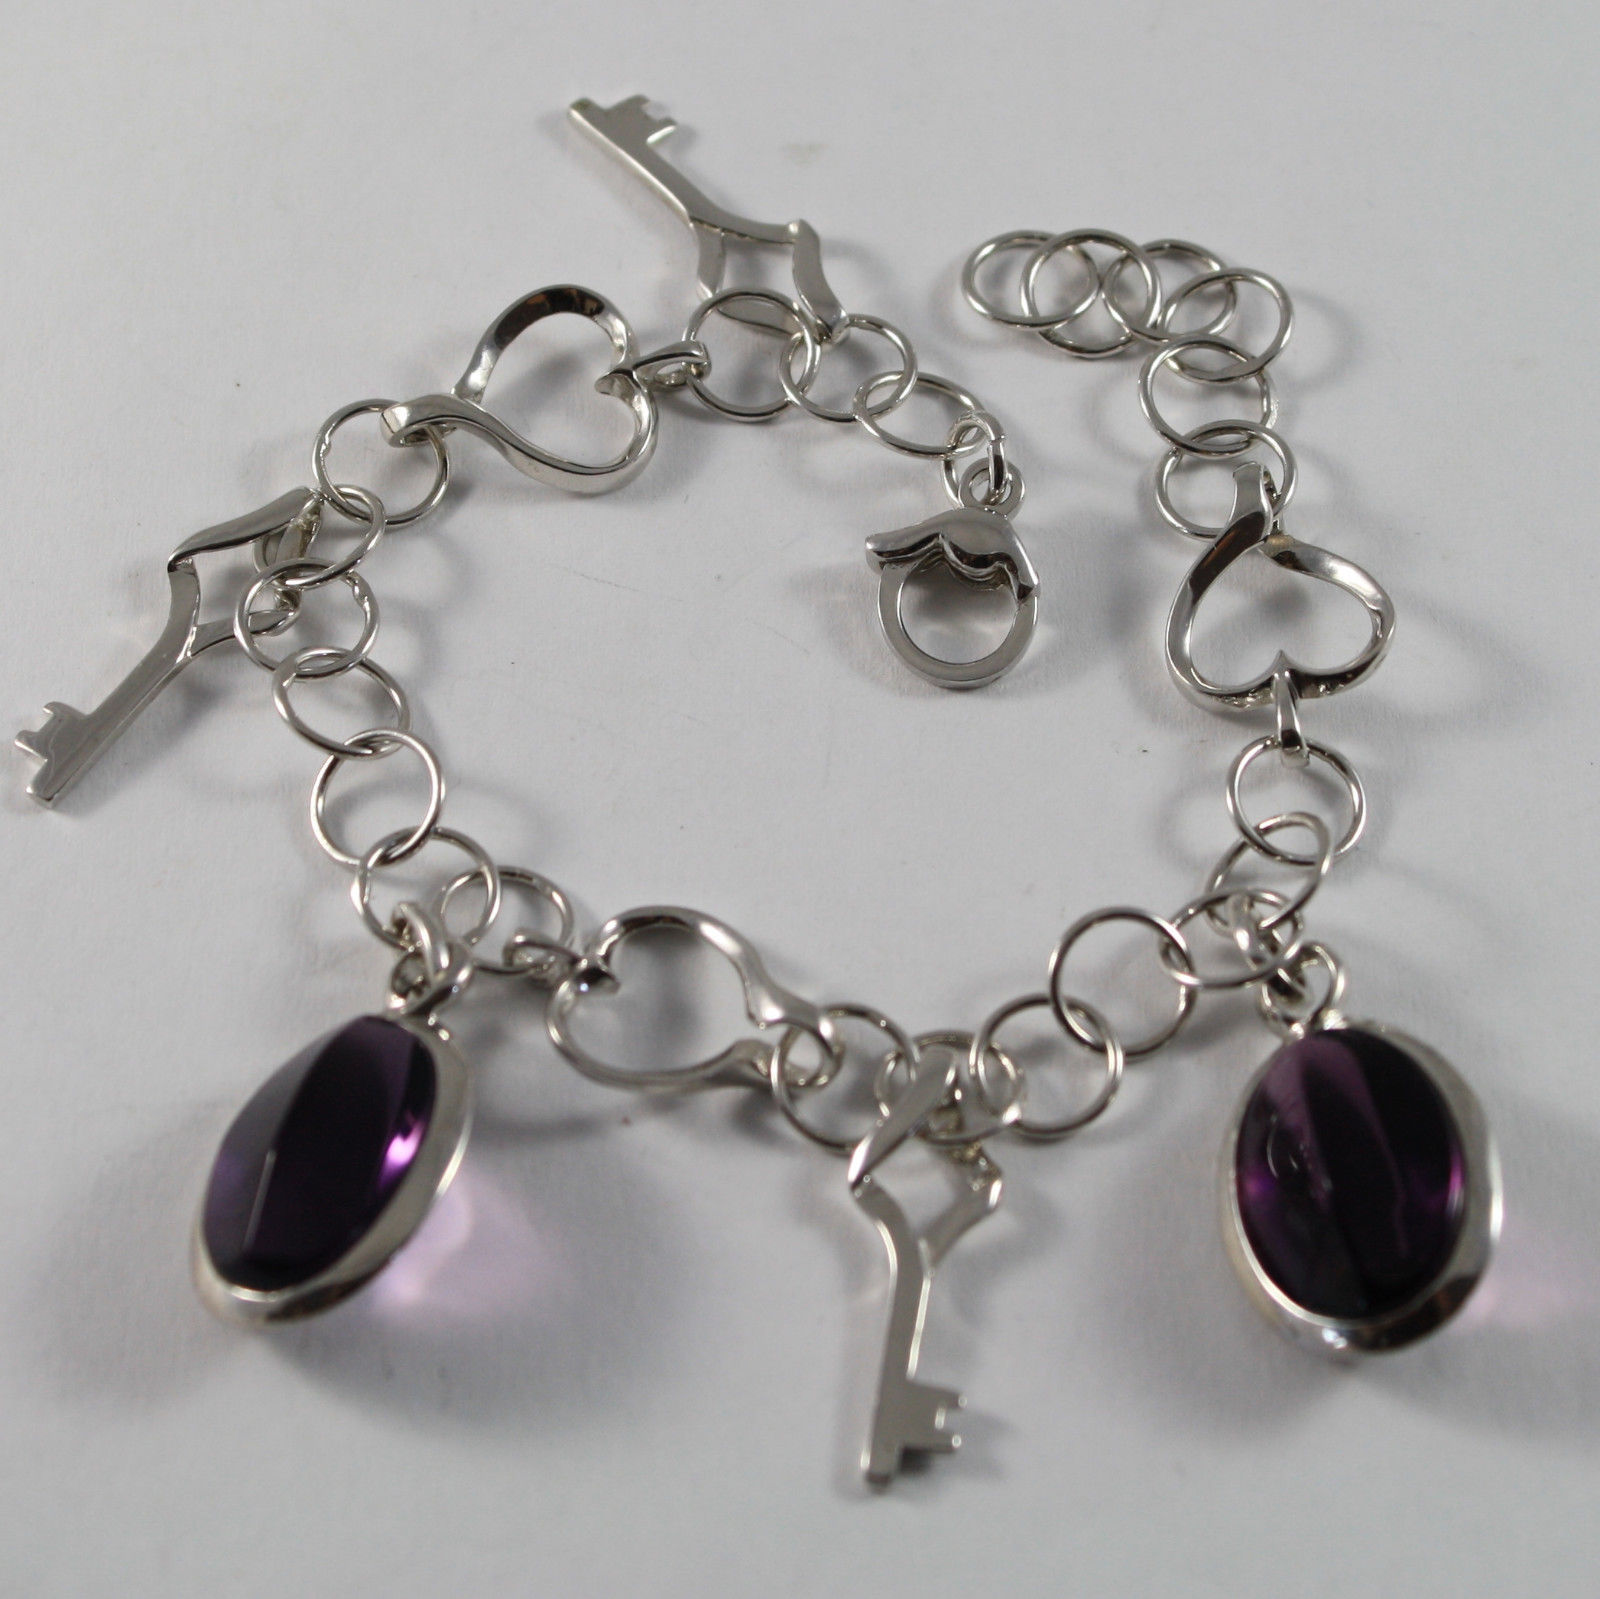 .925 RHODIUM SILVER BRACELET WITH PURPLE CRISTAL AND KEY PENDANTS